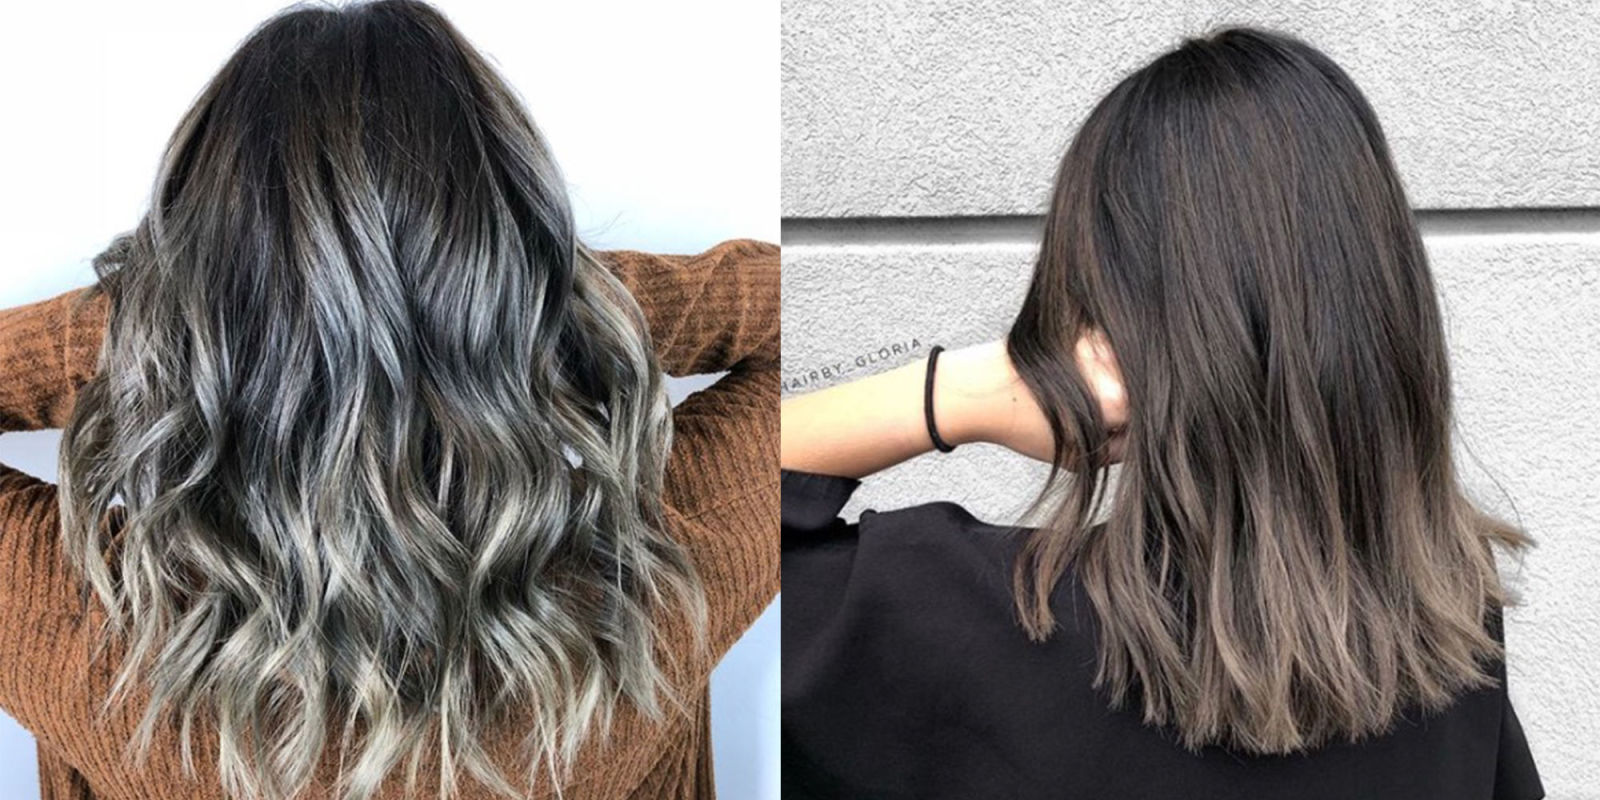 10 reasons you need to try ash brown hair asap